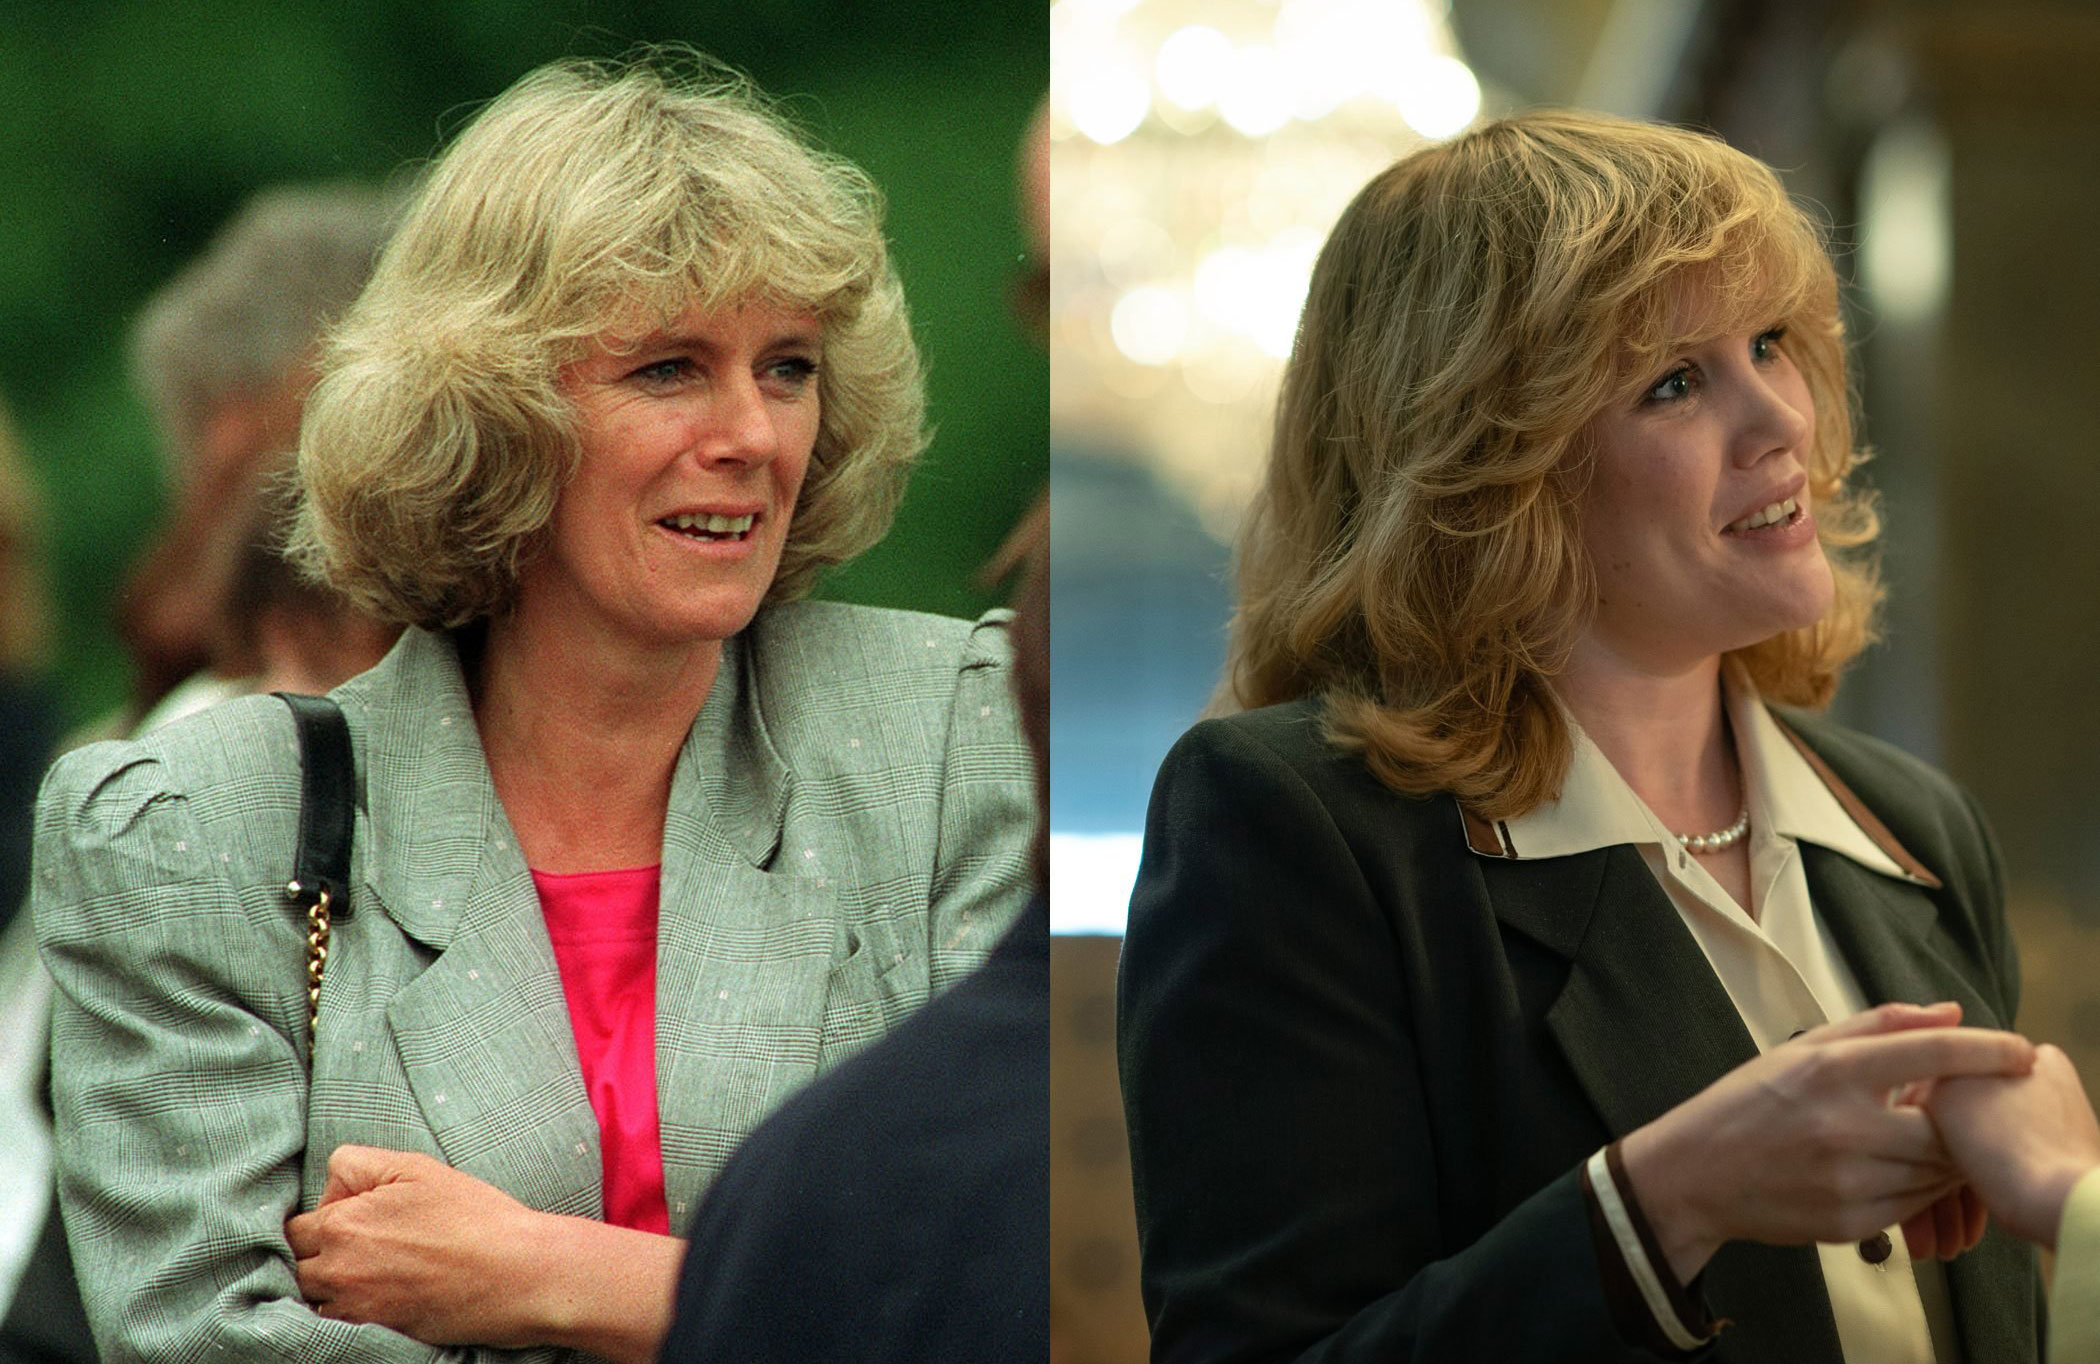 Camilla Parker Bowles, as played by Emerald Fennell